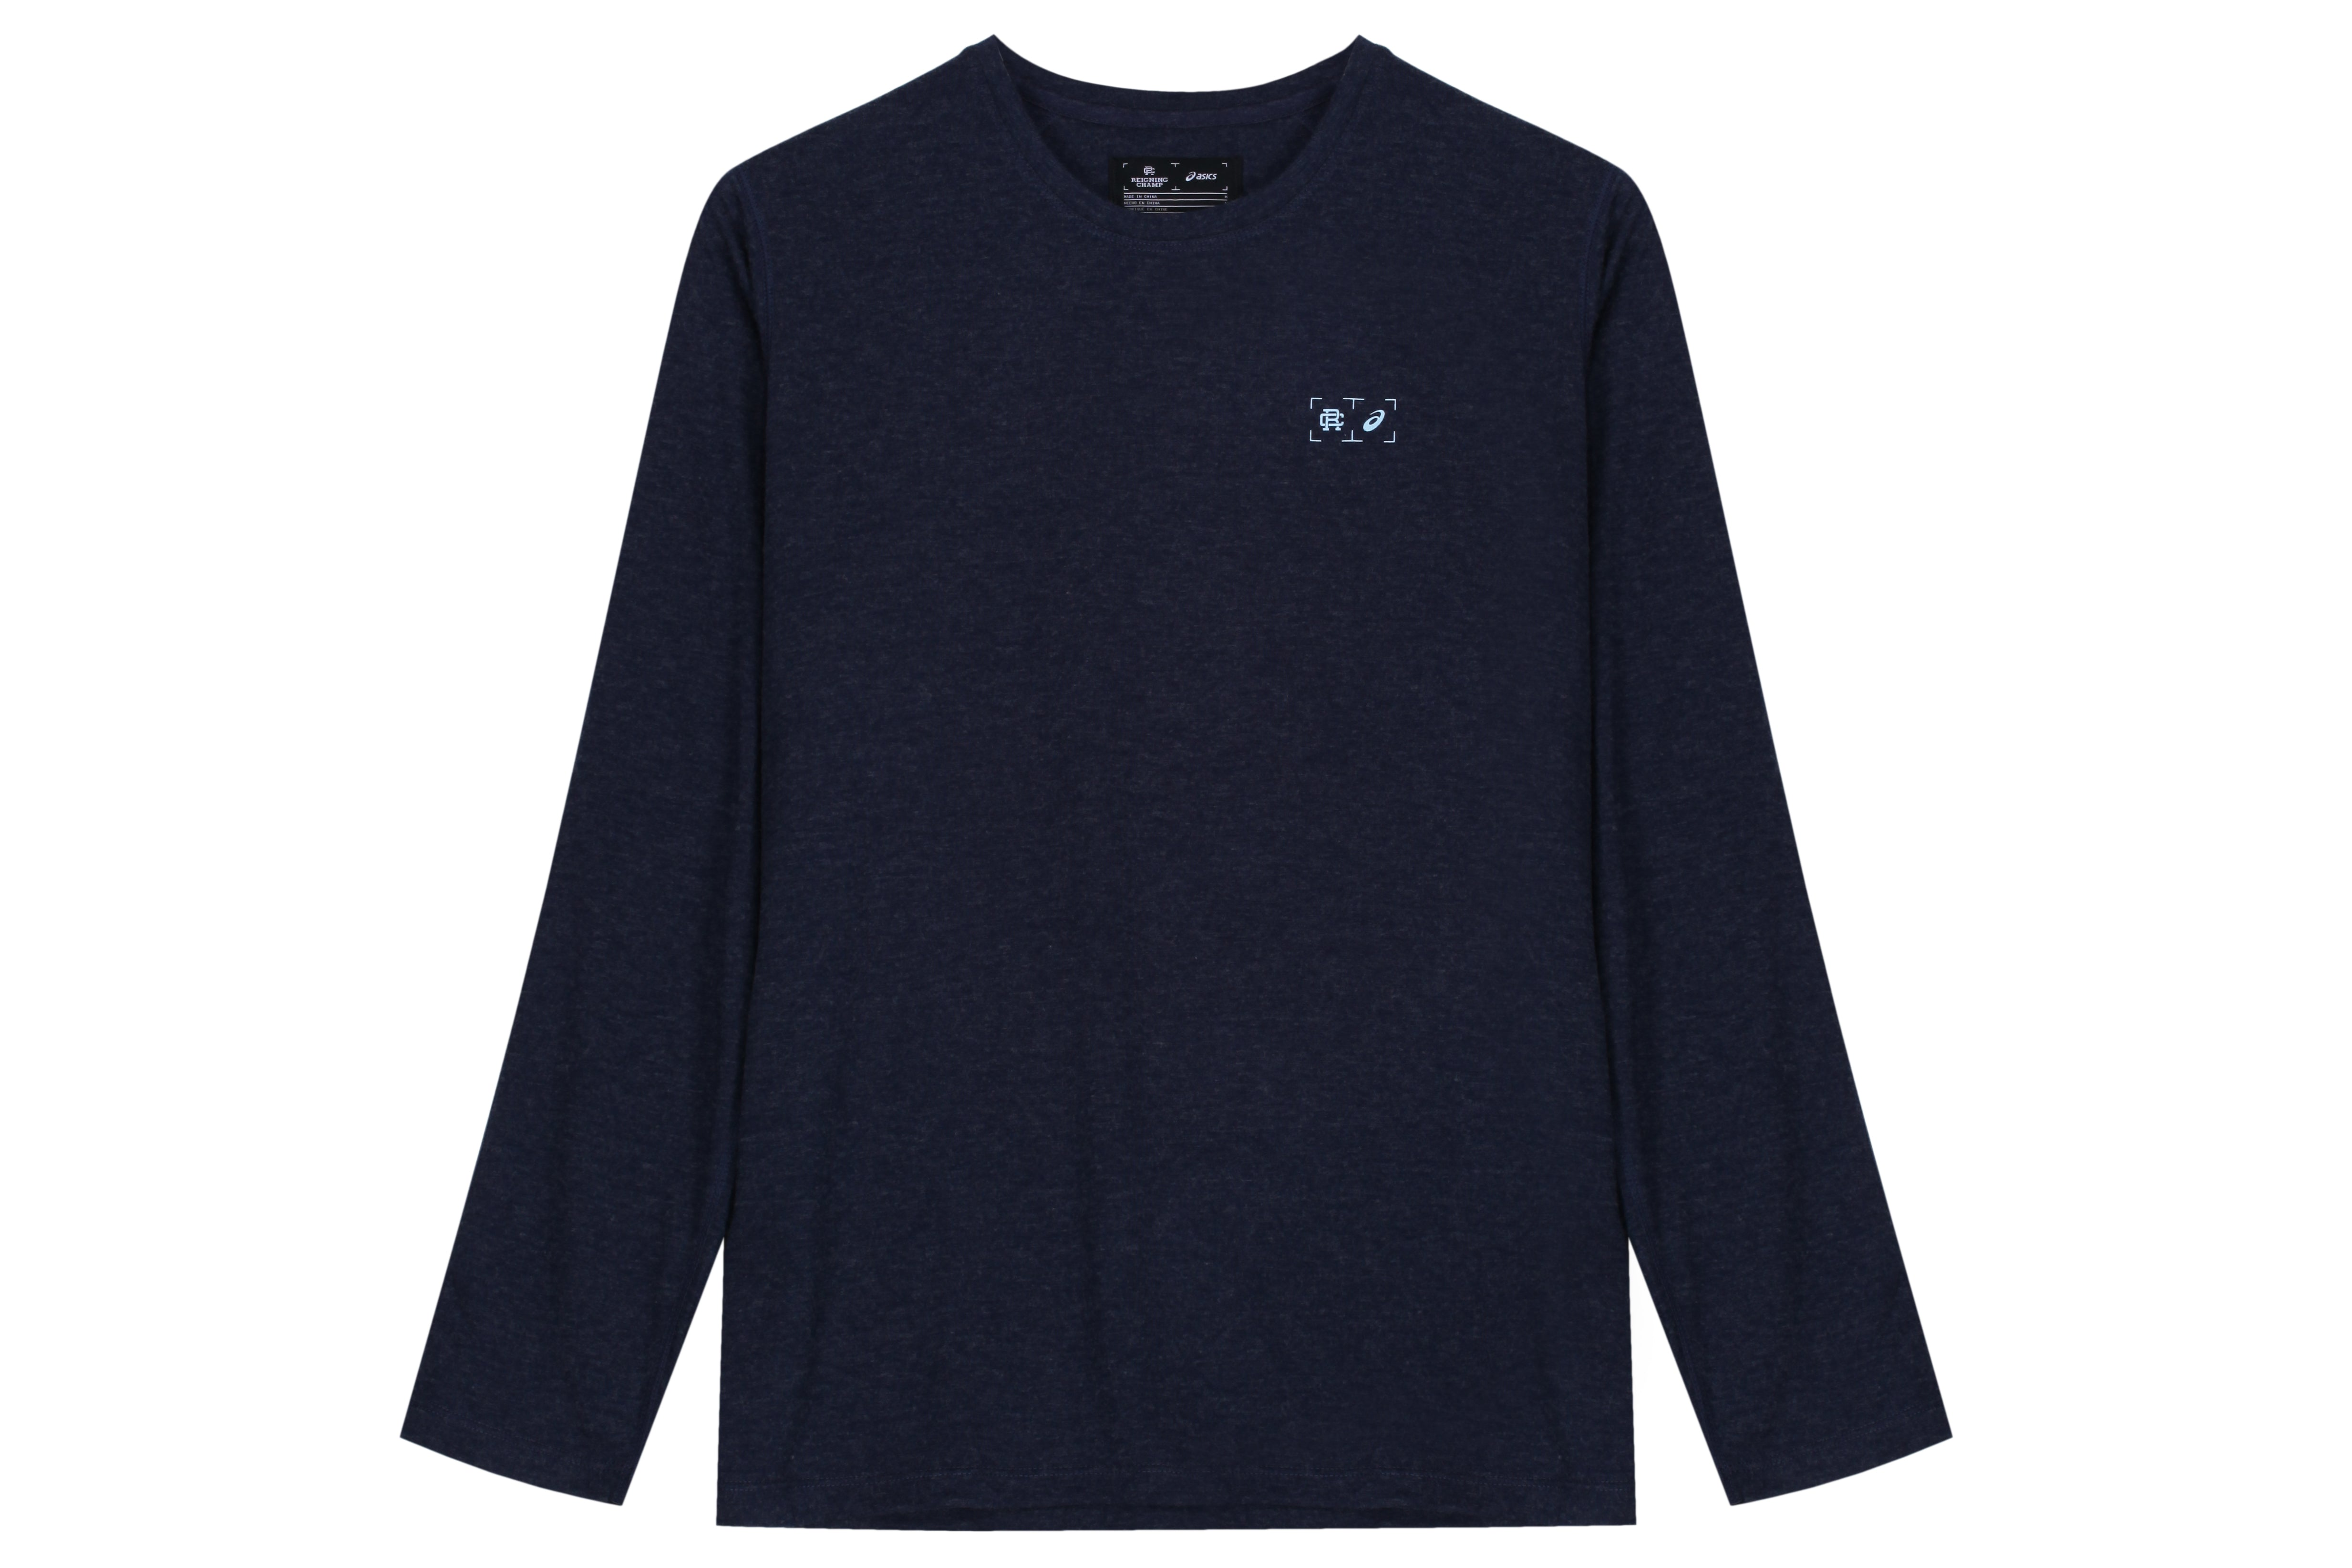 Asics Merino Ascent LS Tee x Reigning Champ